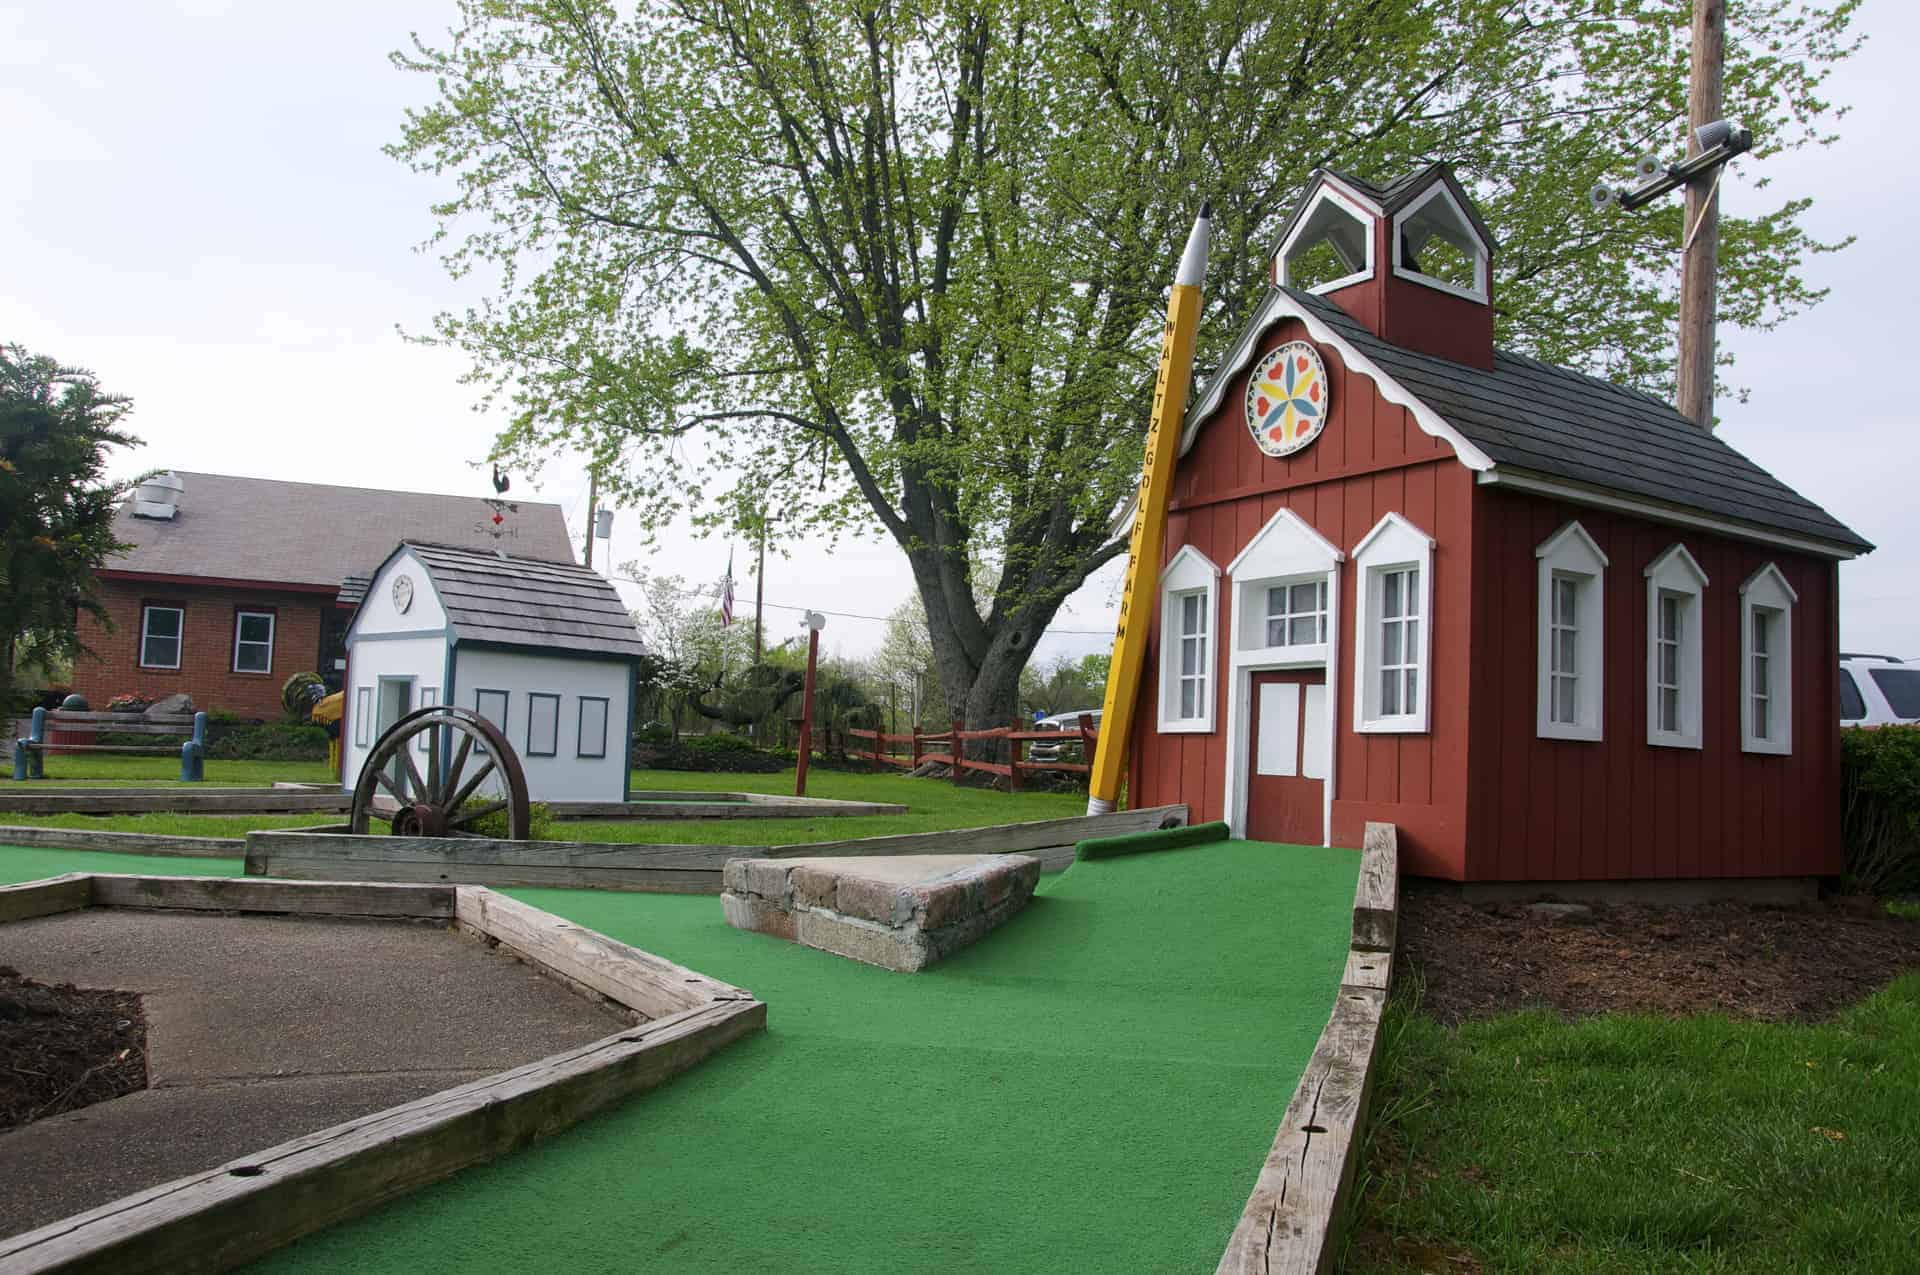 Waltz Golf Farm Miniature Golf 2017 Limerick PA Pennsylvania Retro Roadmap